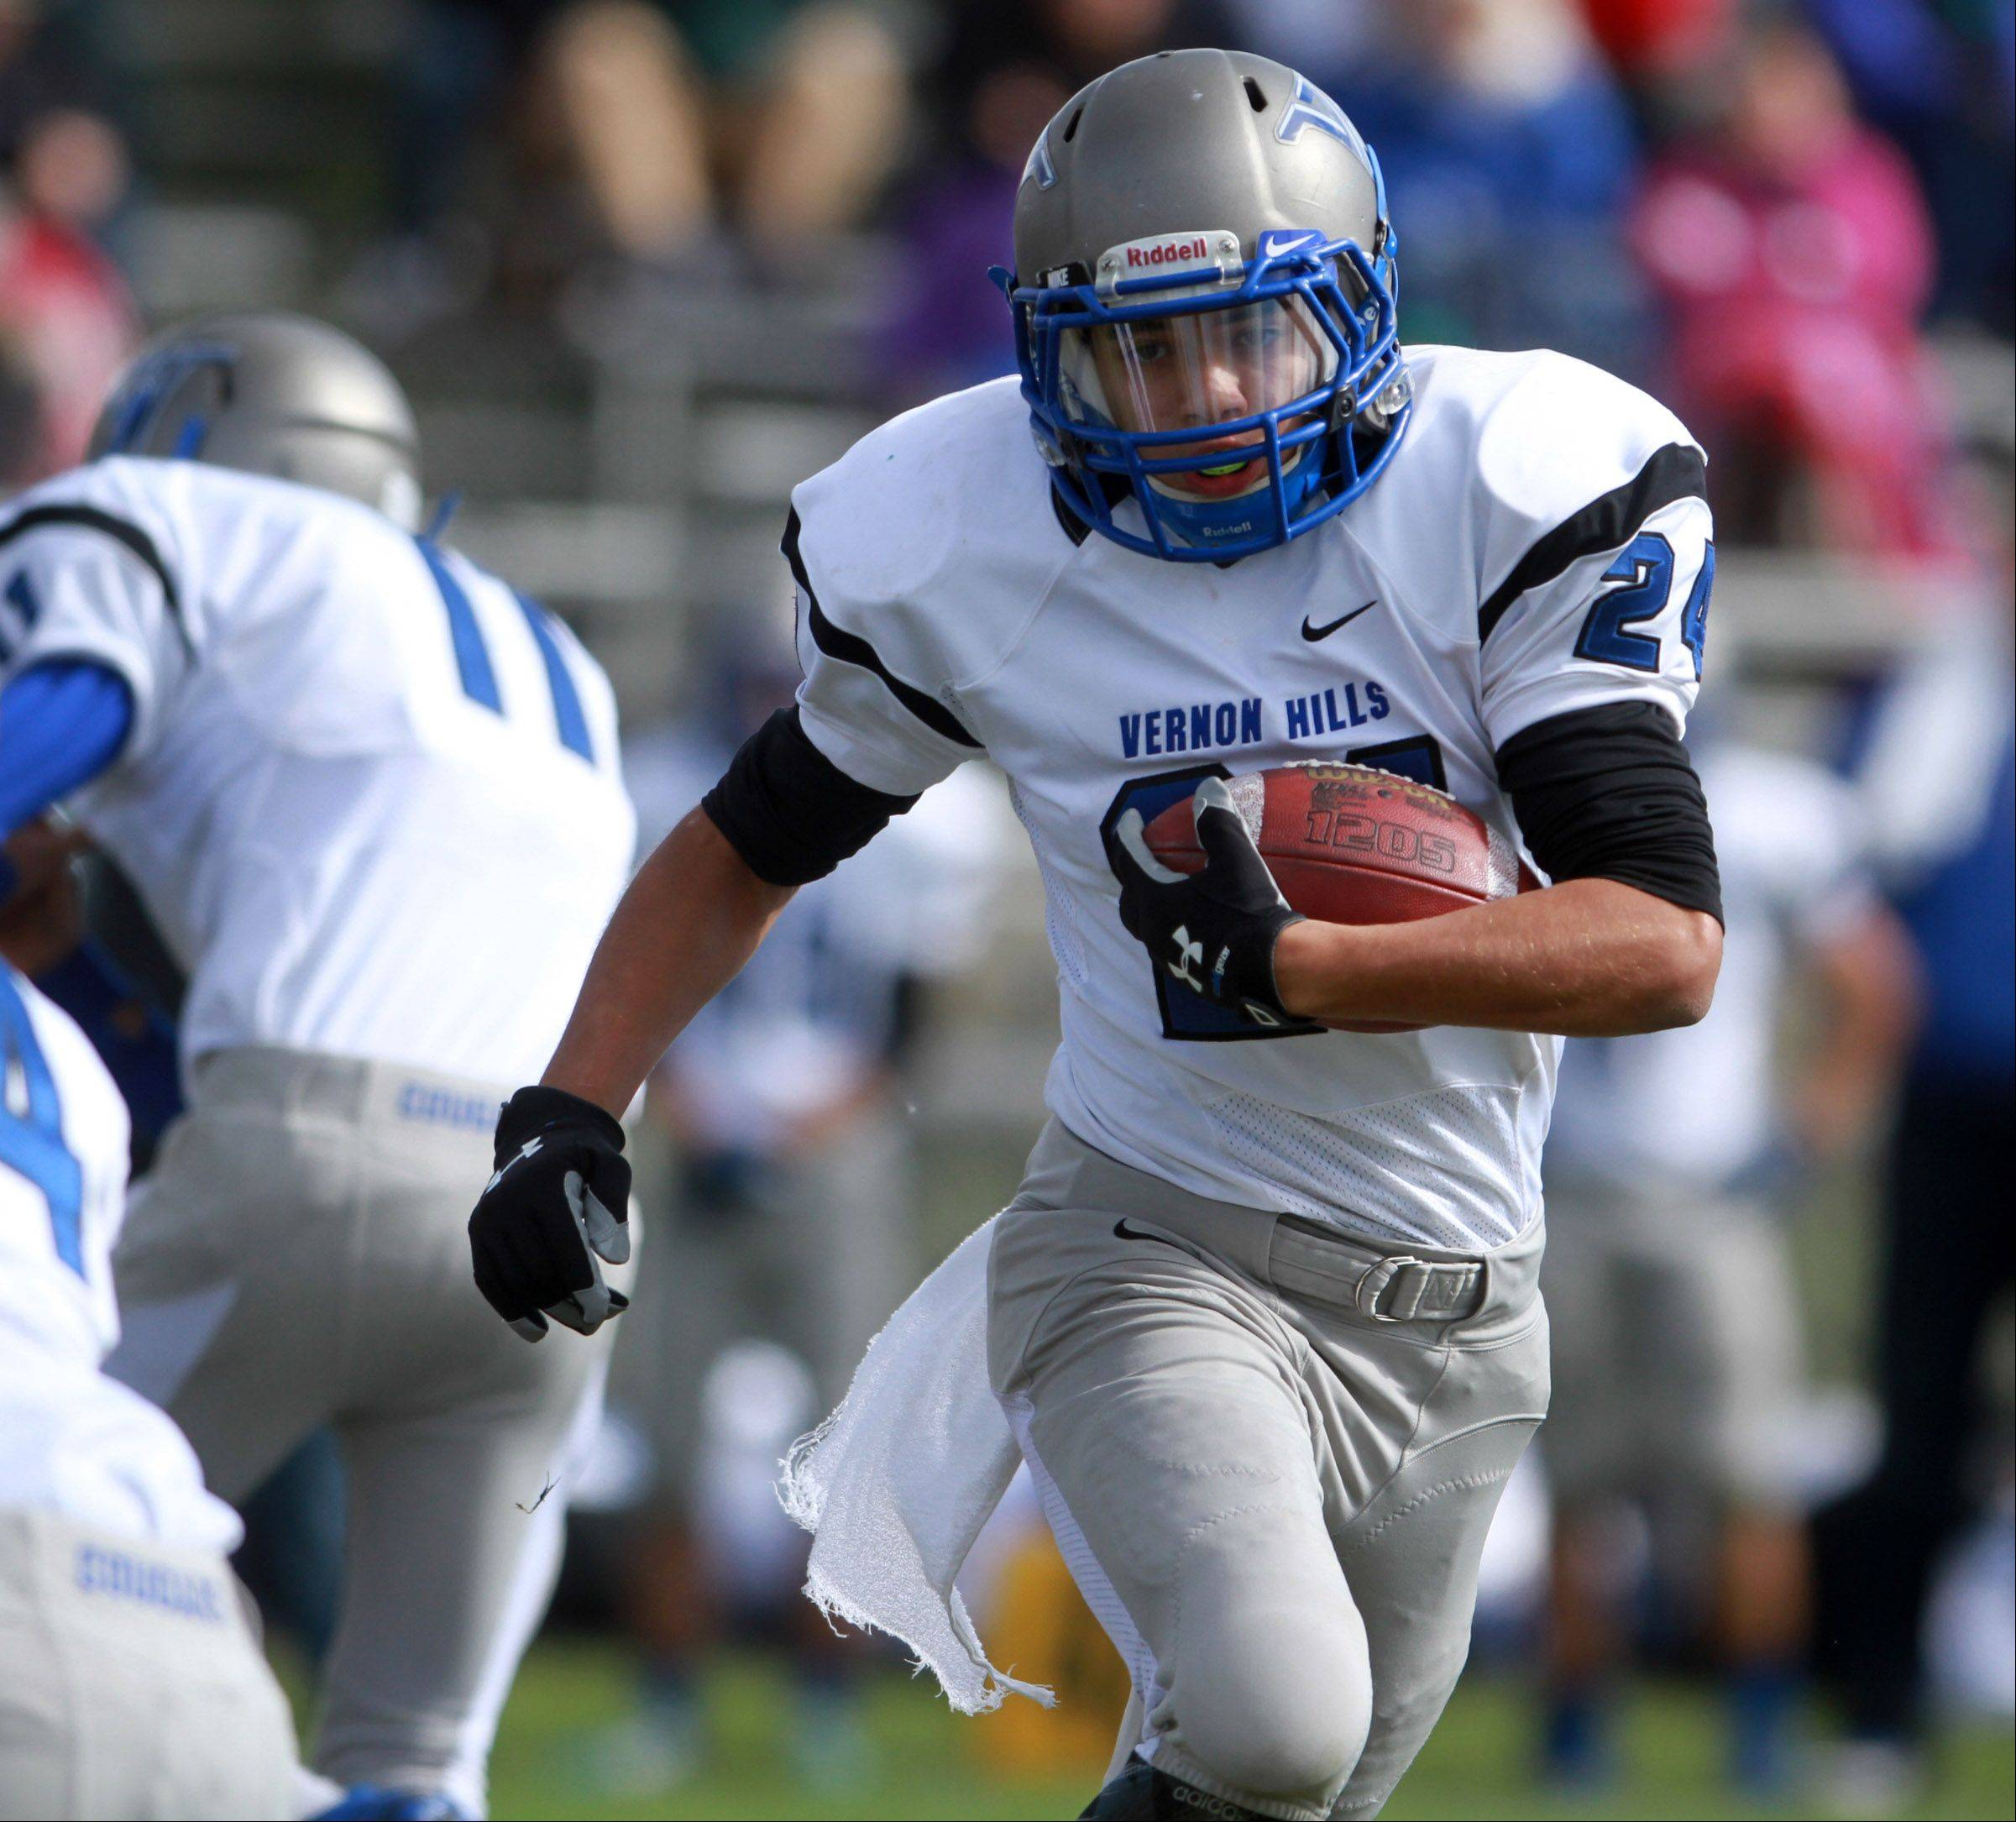 Vernon Hills running back Andres Salazar gets upfield against host Round Lake on Saturday.